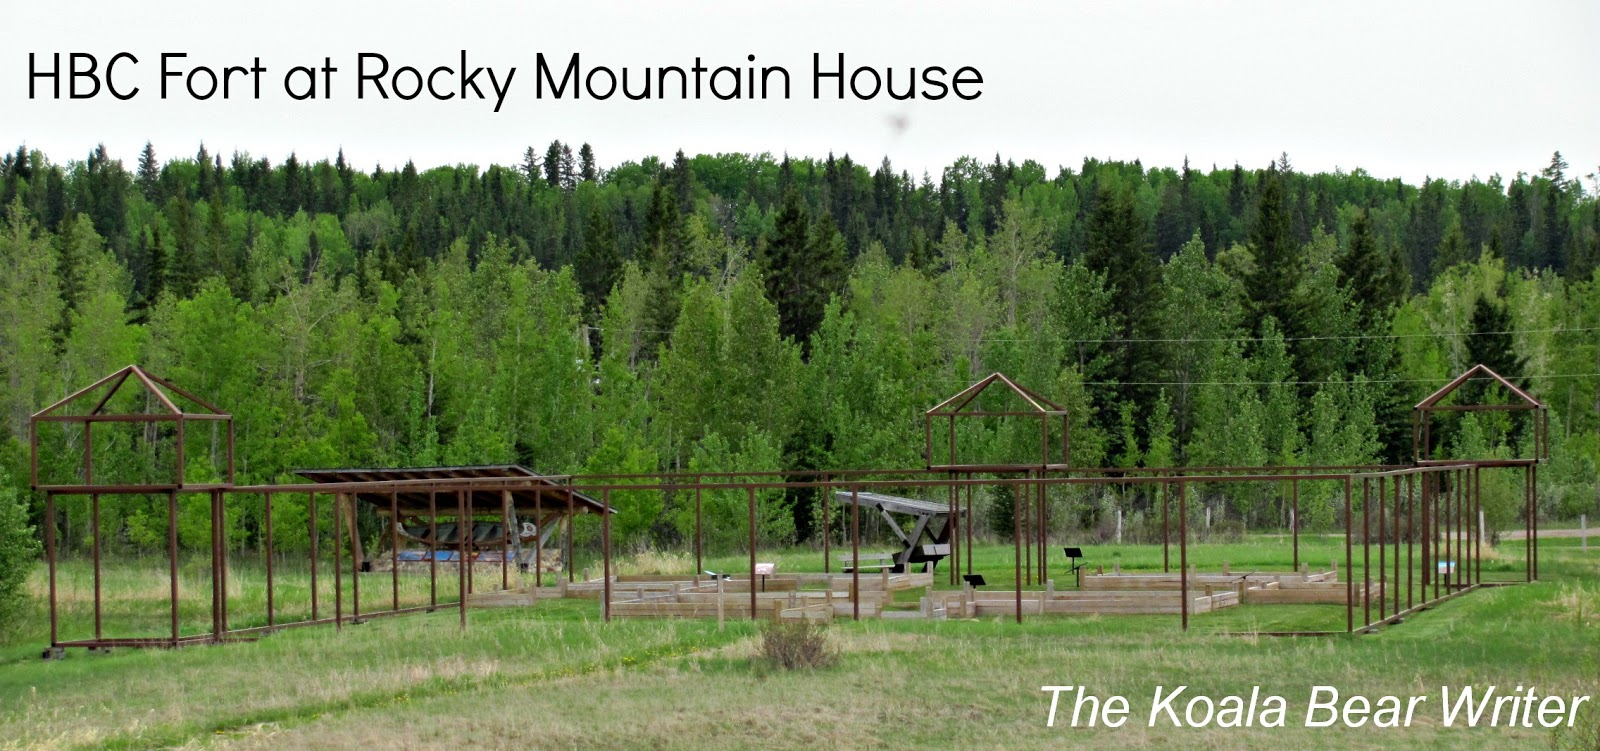 rocky mountain house dating At rocky mountain house national historic site  learn a new trade or craft dating back to the fur trade era  in the foothills of the rocky mountains,.